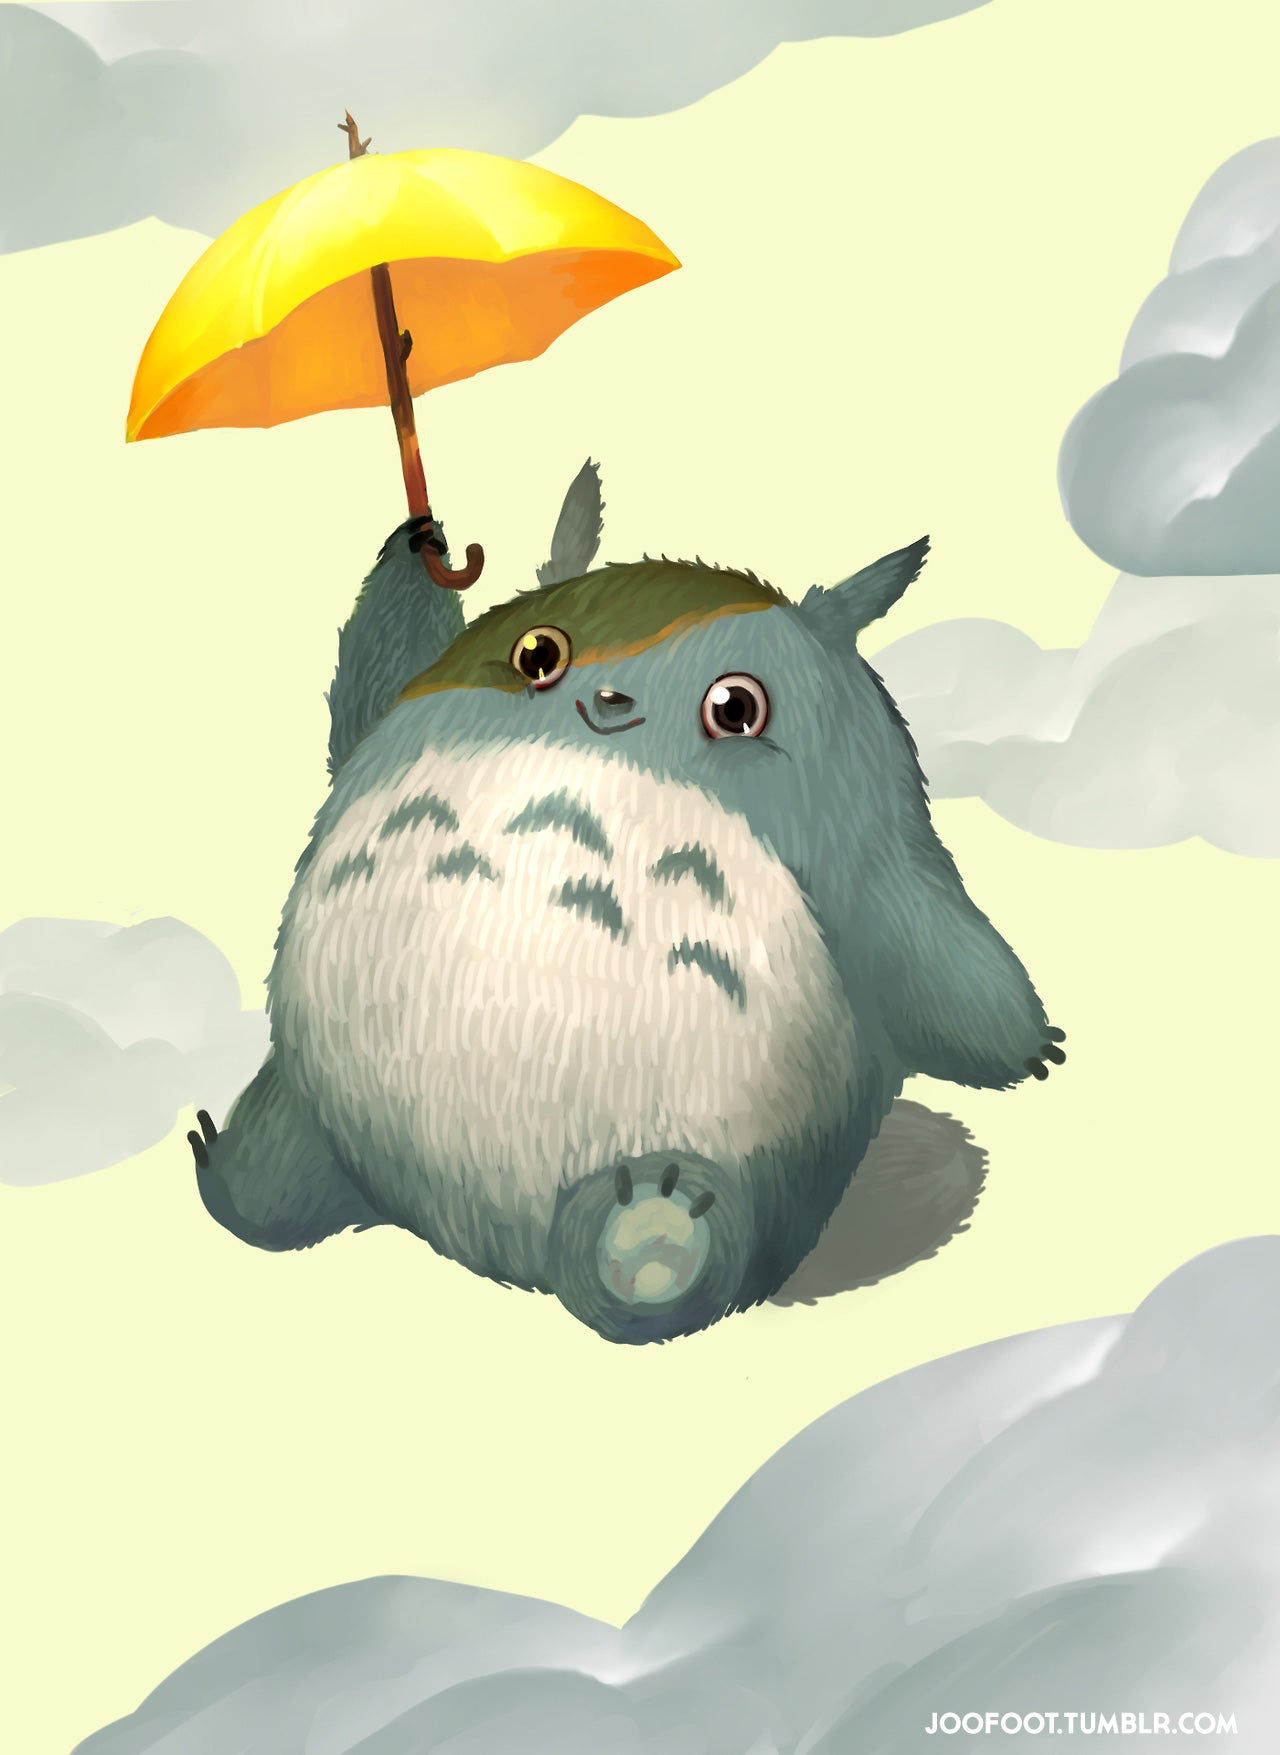 Uh, Totoro, Are You OK?